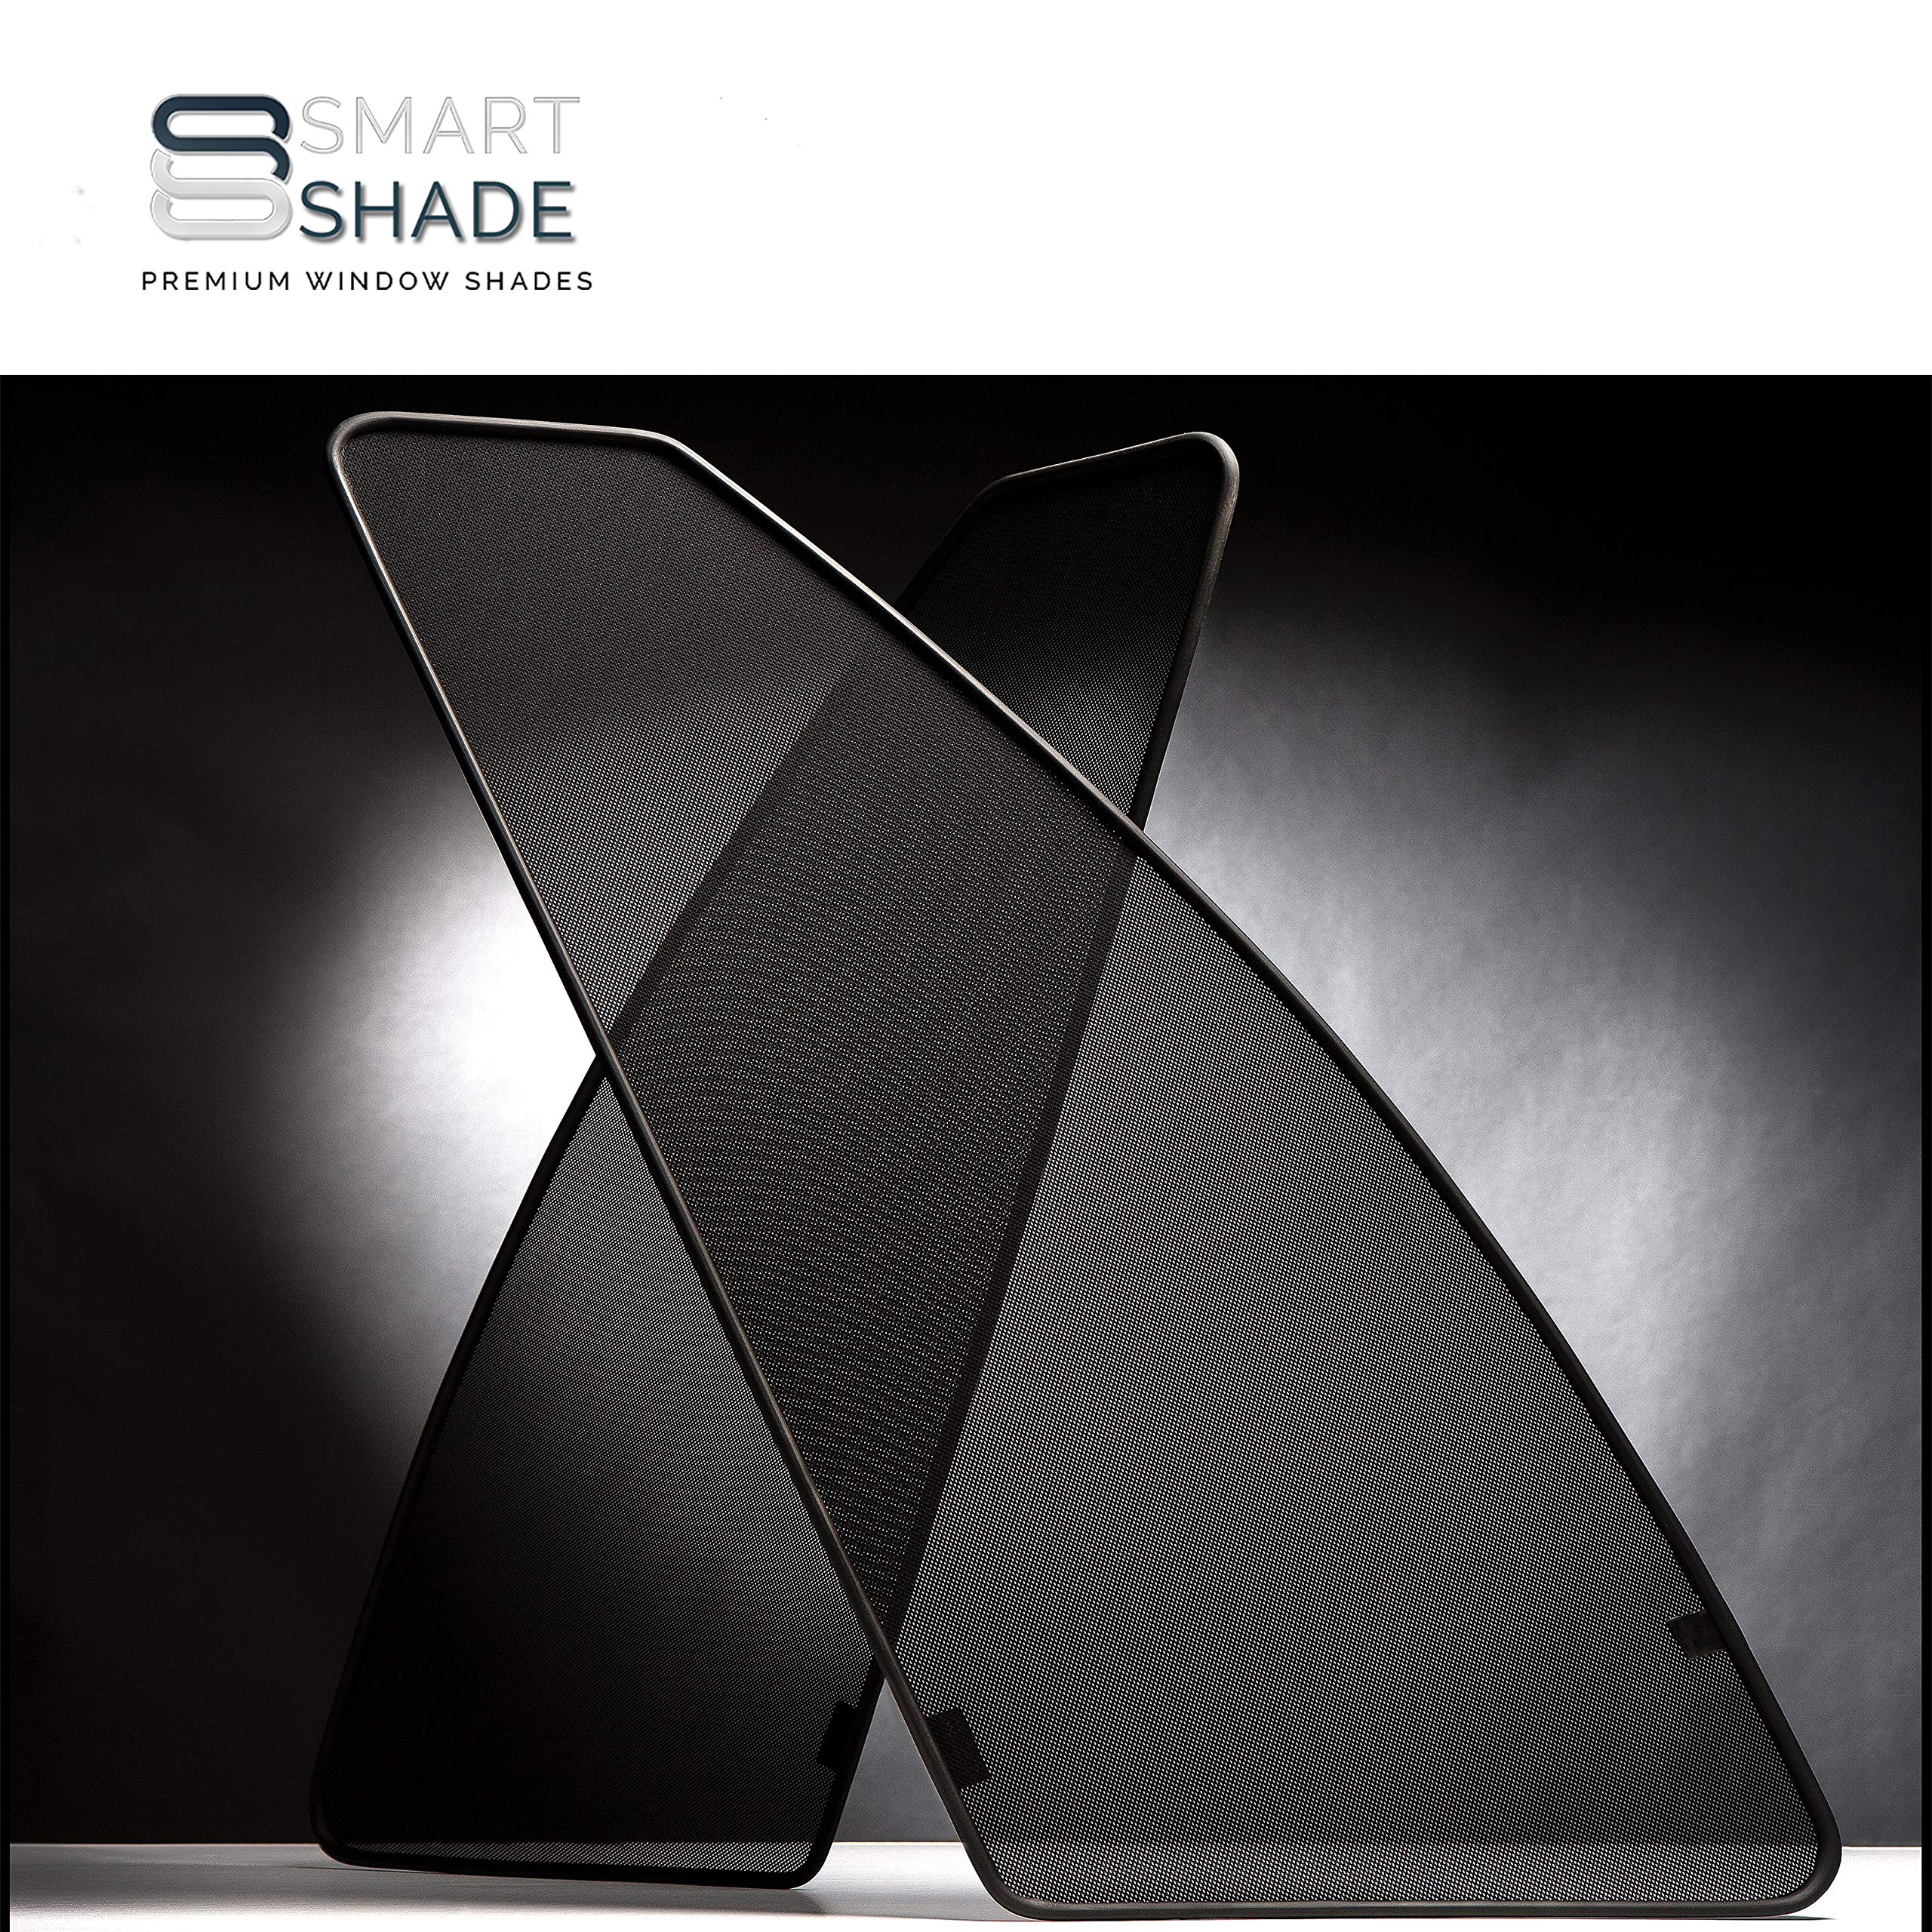 Smartshade - Nissan Sentra 2012 2018 (BACK) Flawless Magnetic Custom-Tailored Window Shades - UVA/UVB Rays Protection by SMARTSHADE